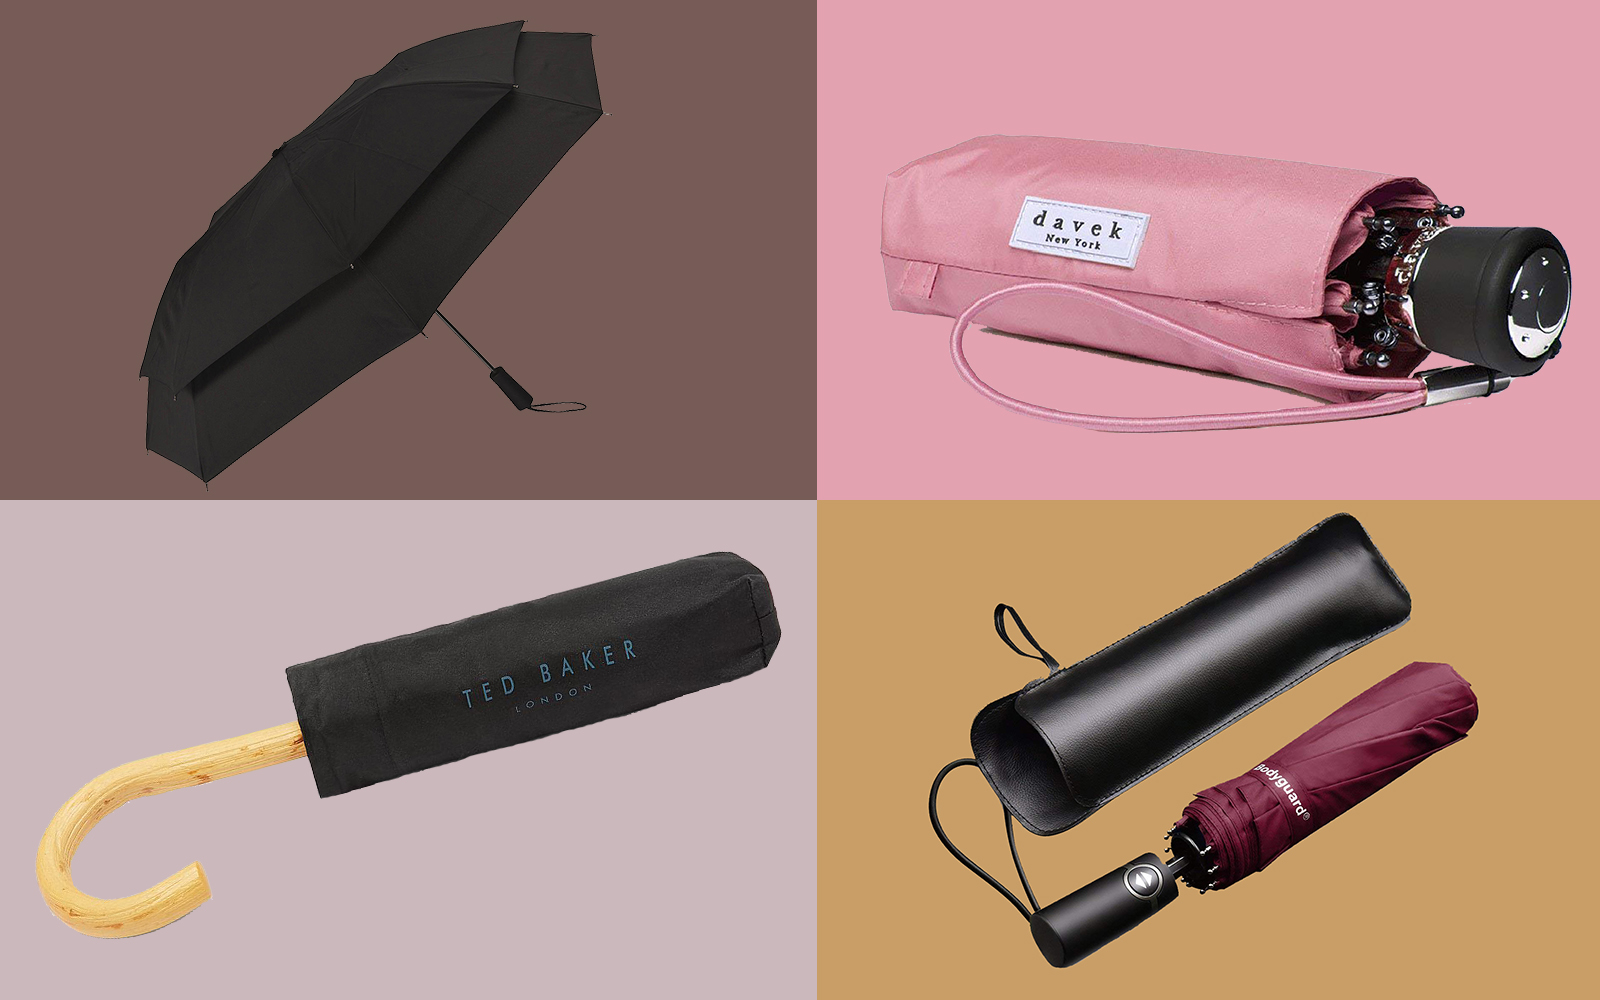 The Best Travel Umbrellas That Fit in Your Carry-on Bag